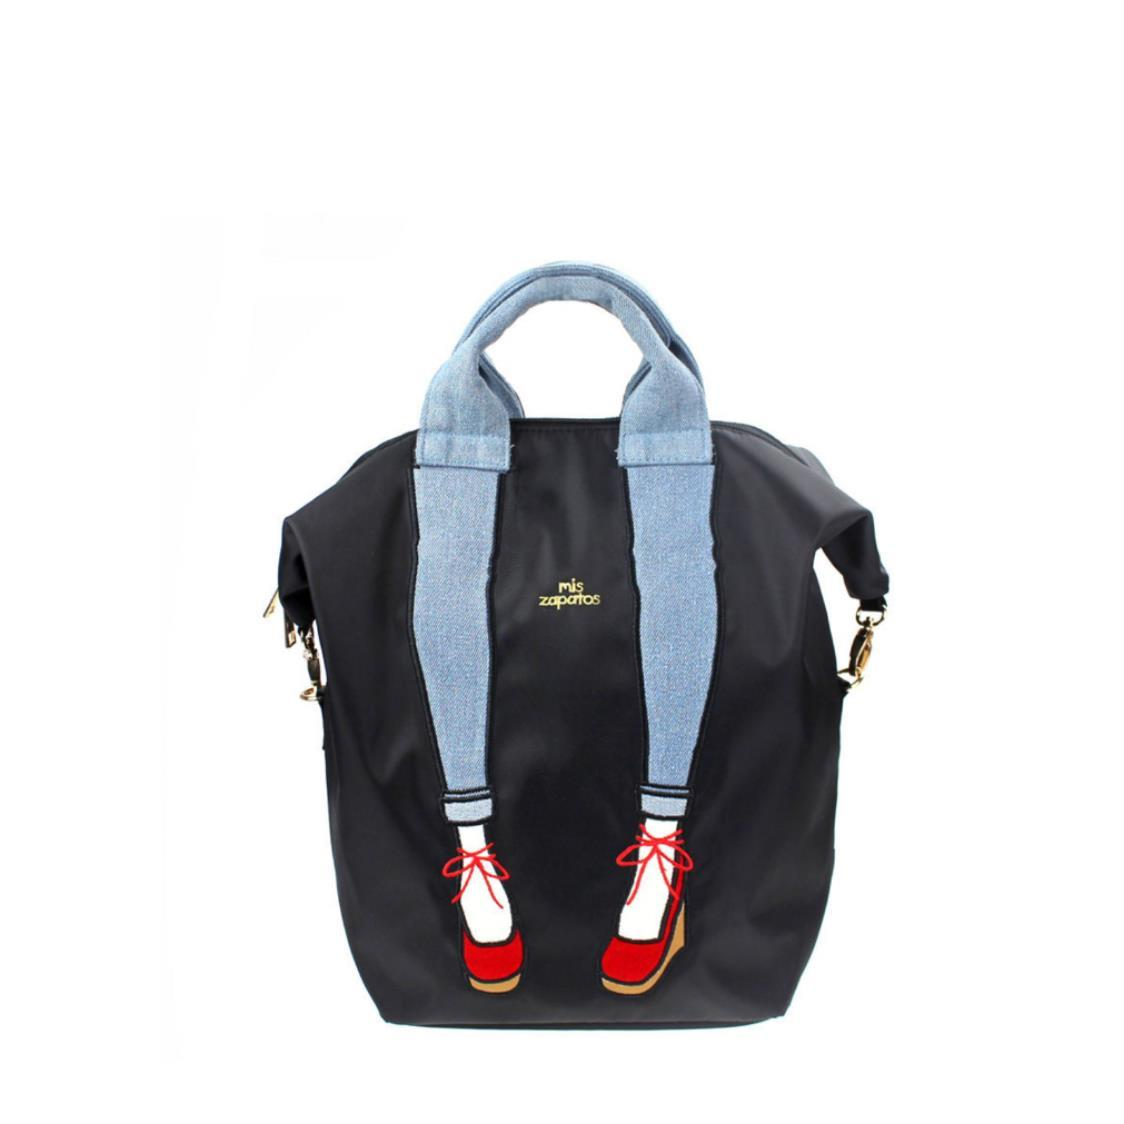 3-Way Use Jeans with Wedges Backpack Black